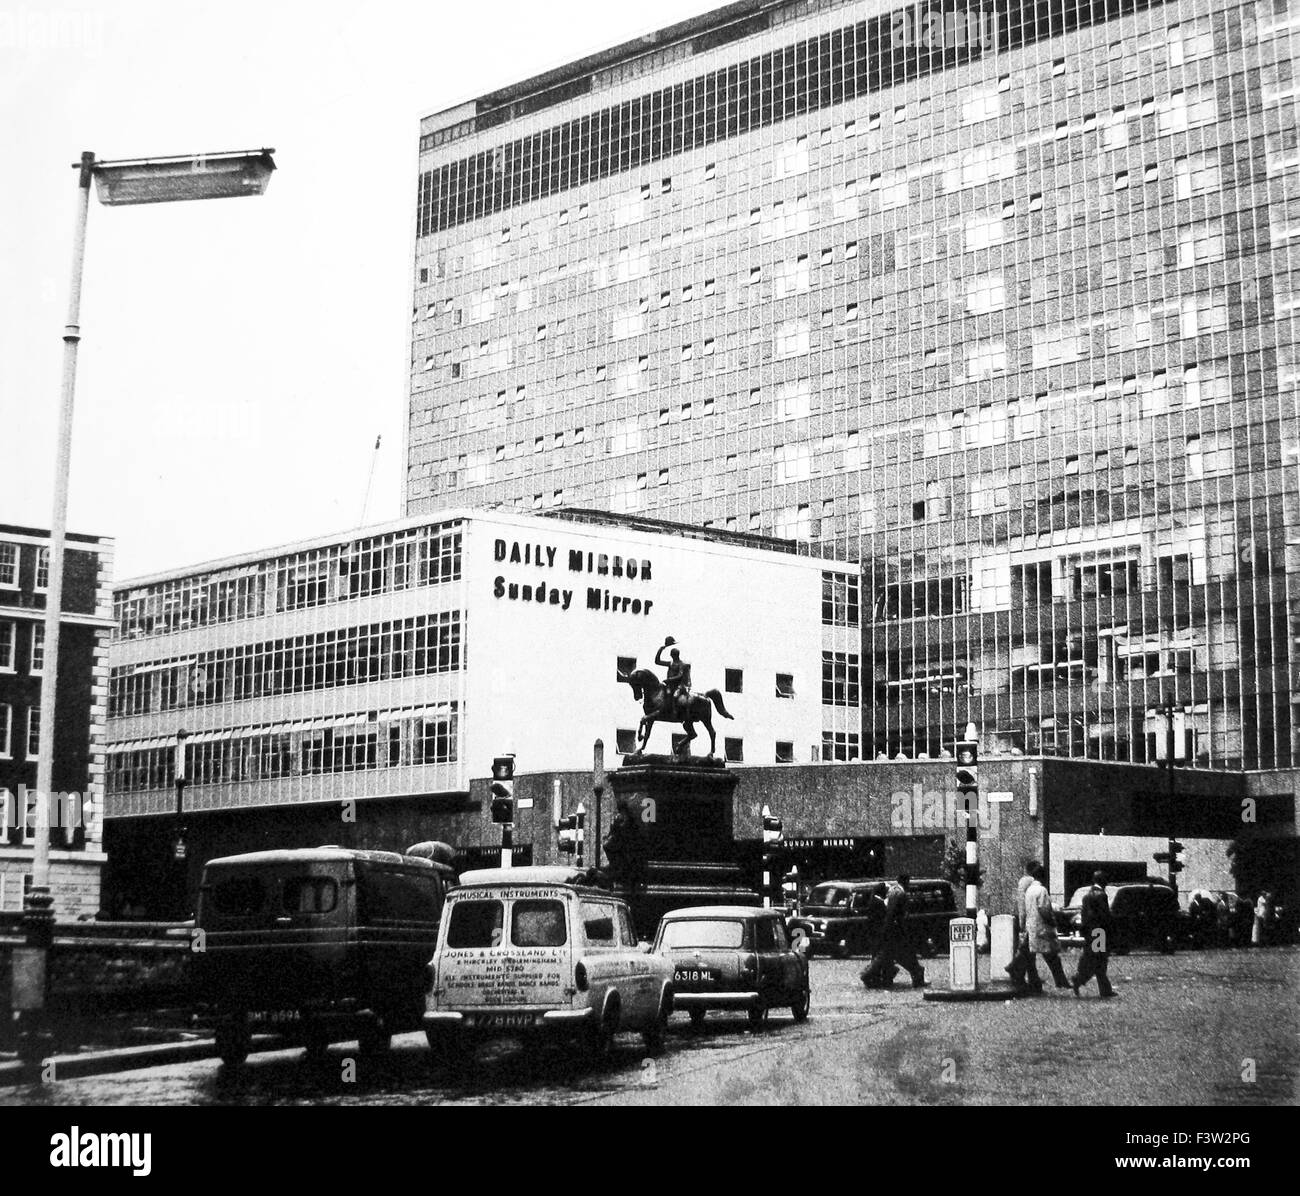 Daily Mirror HQ Holborn Circus London - probably 1960s - Stock Image